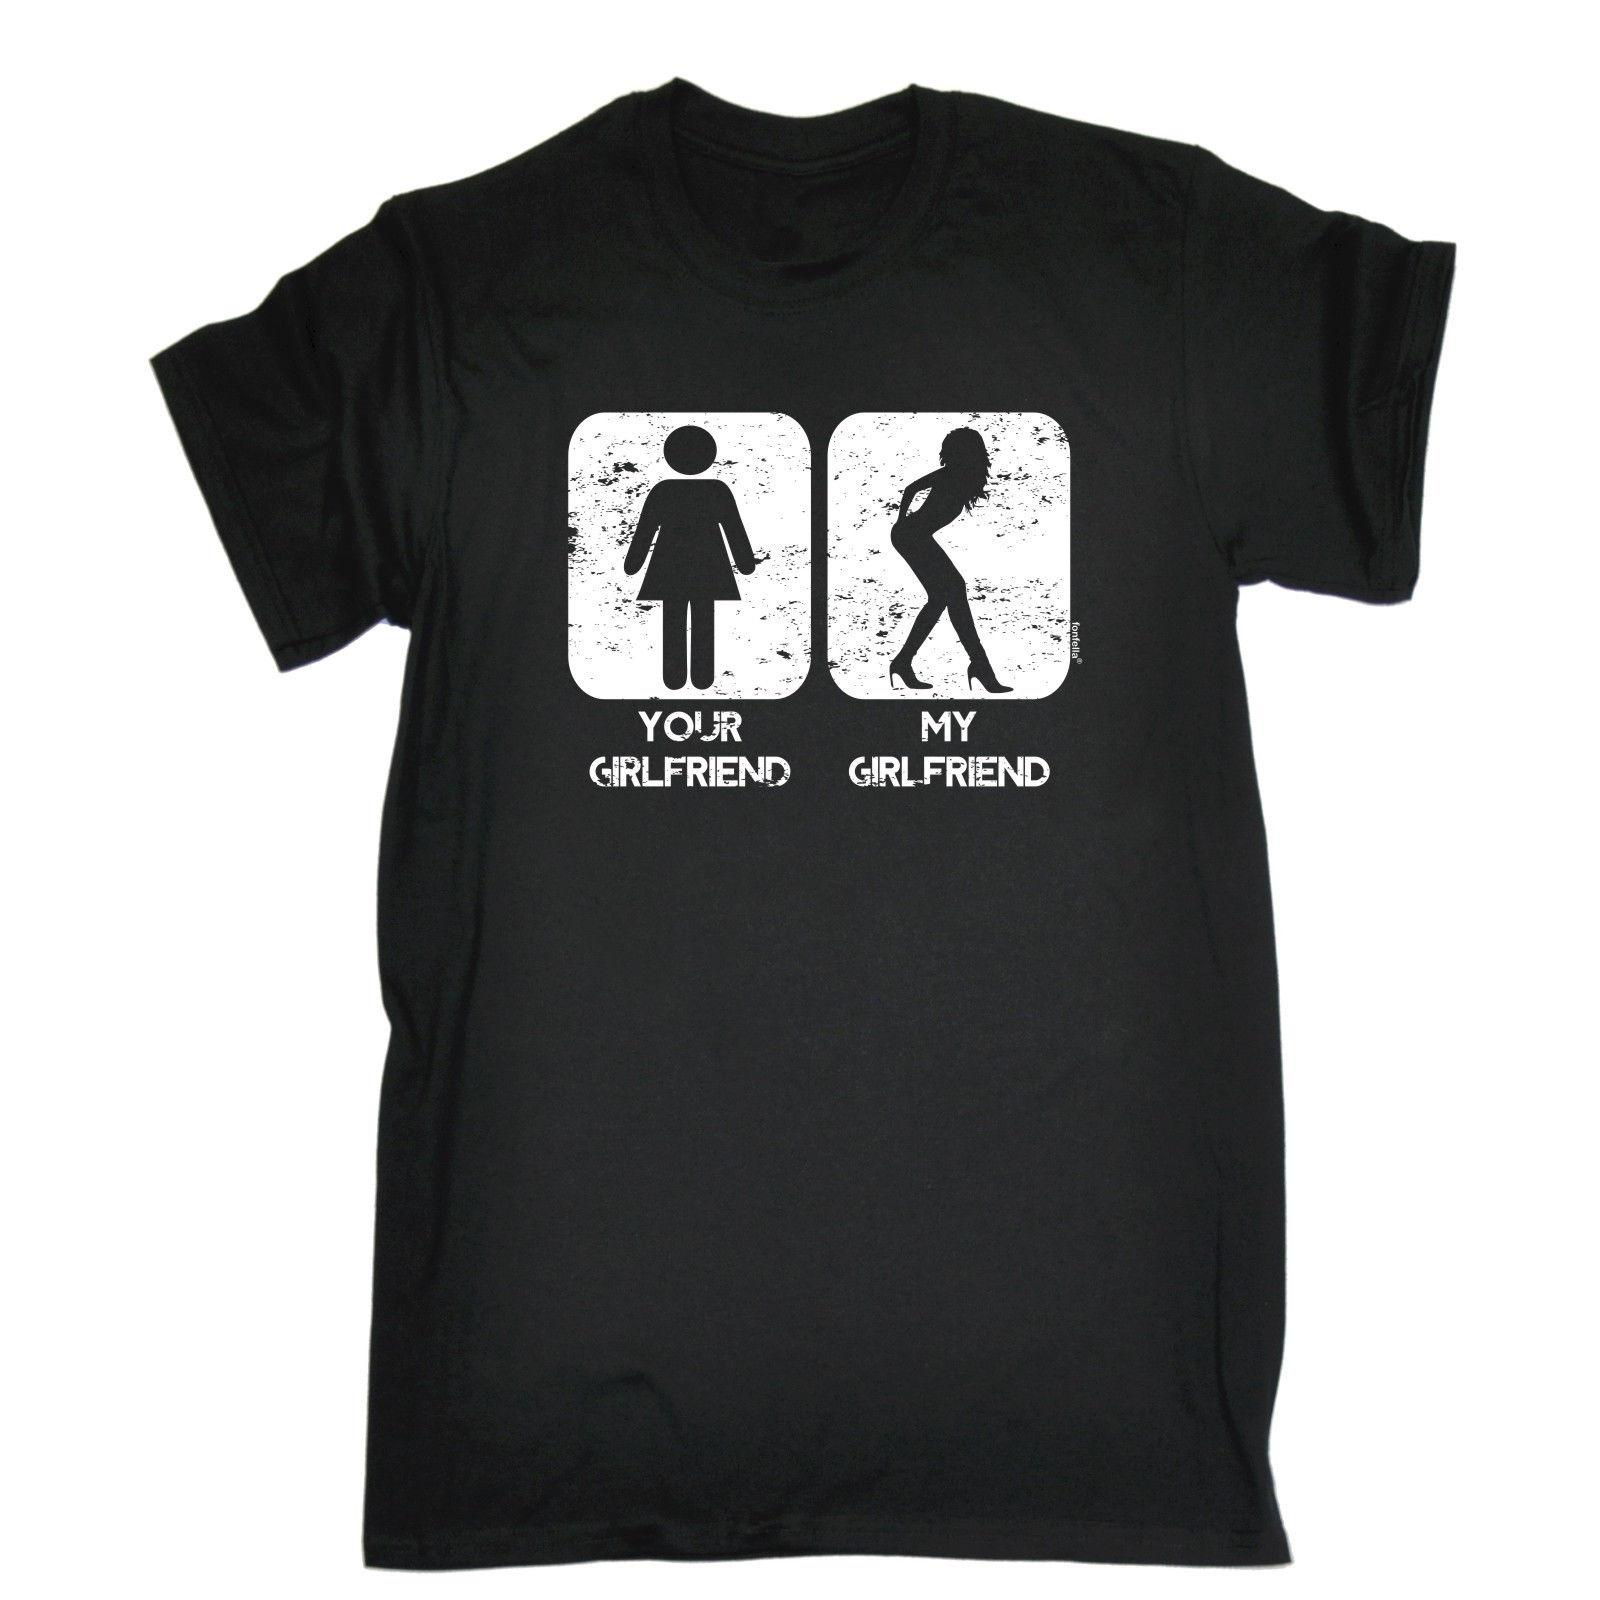 0c86bdef Your Girlfriend My Girlfriend T Shirt Offensive Partner Funny Gift Birthday  Shirt Cotton Hight Quality Man T Shirt Buy Funny Shirts Interesting Tee  Shirts ...